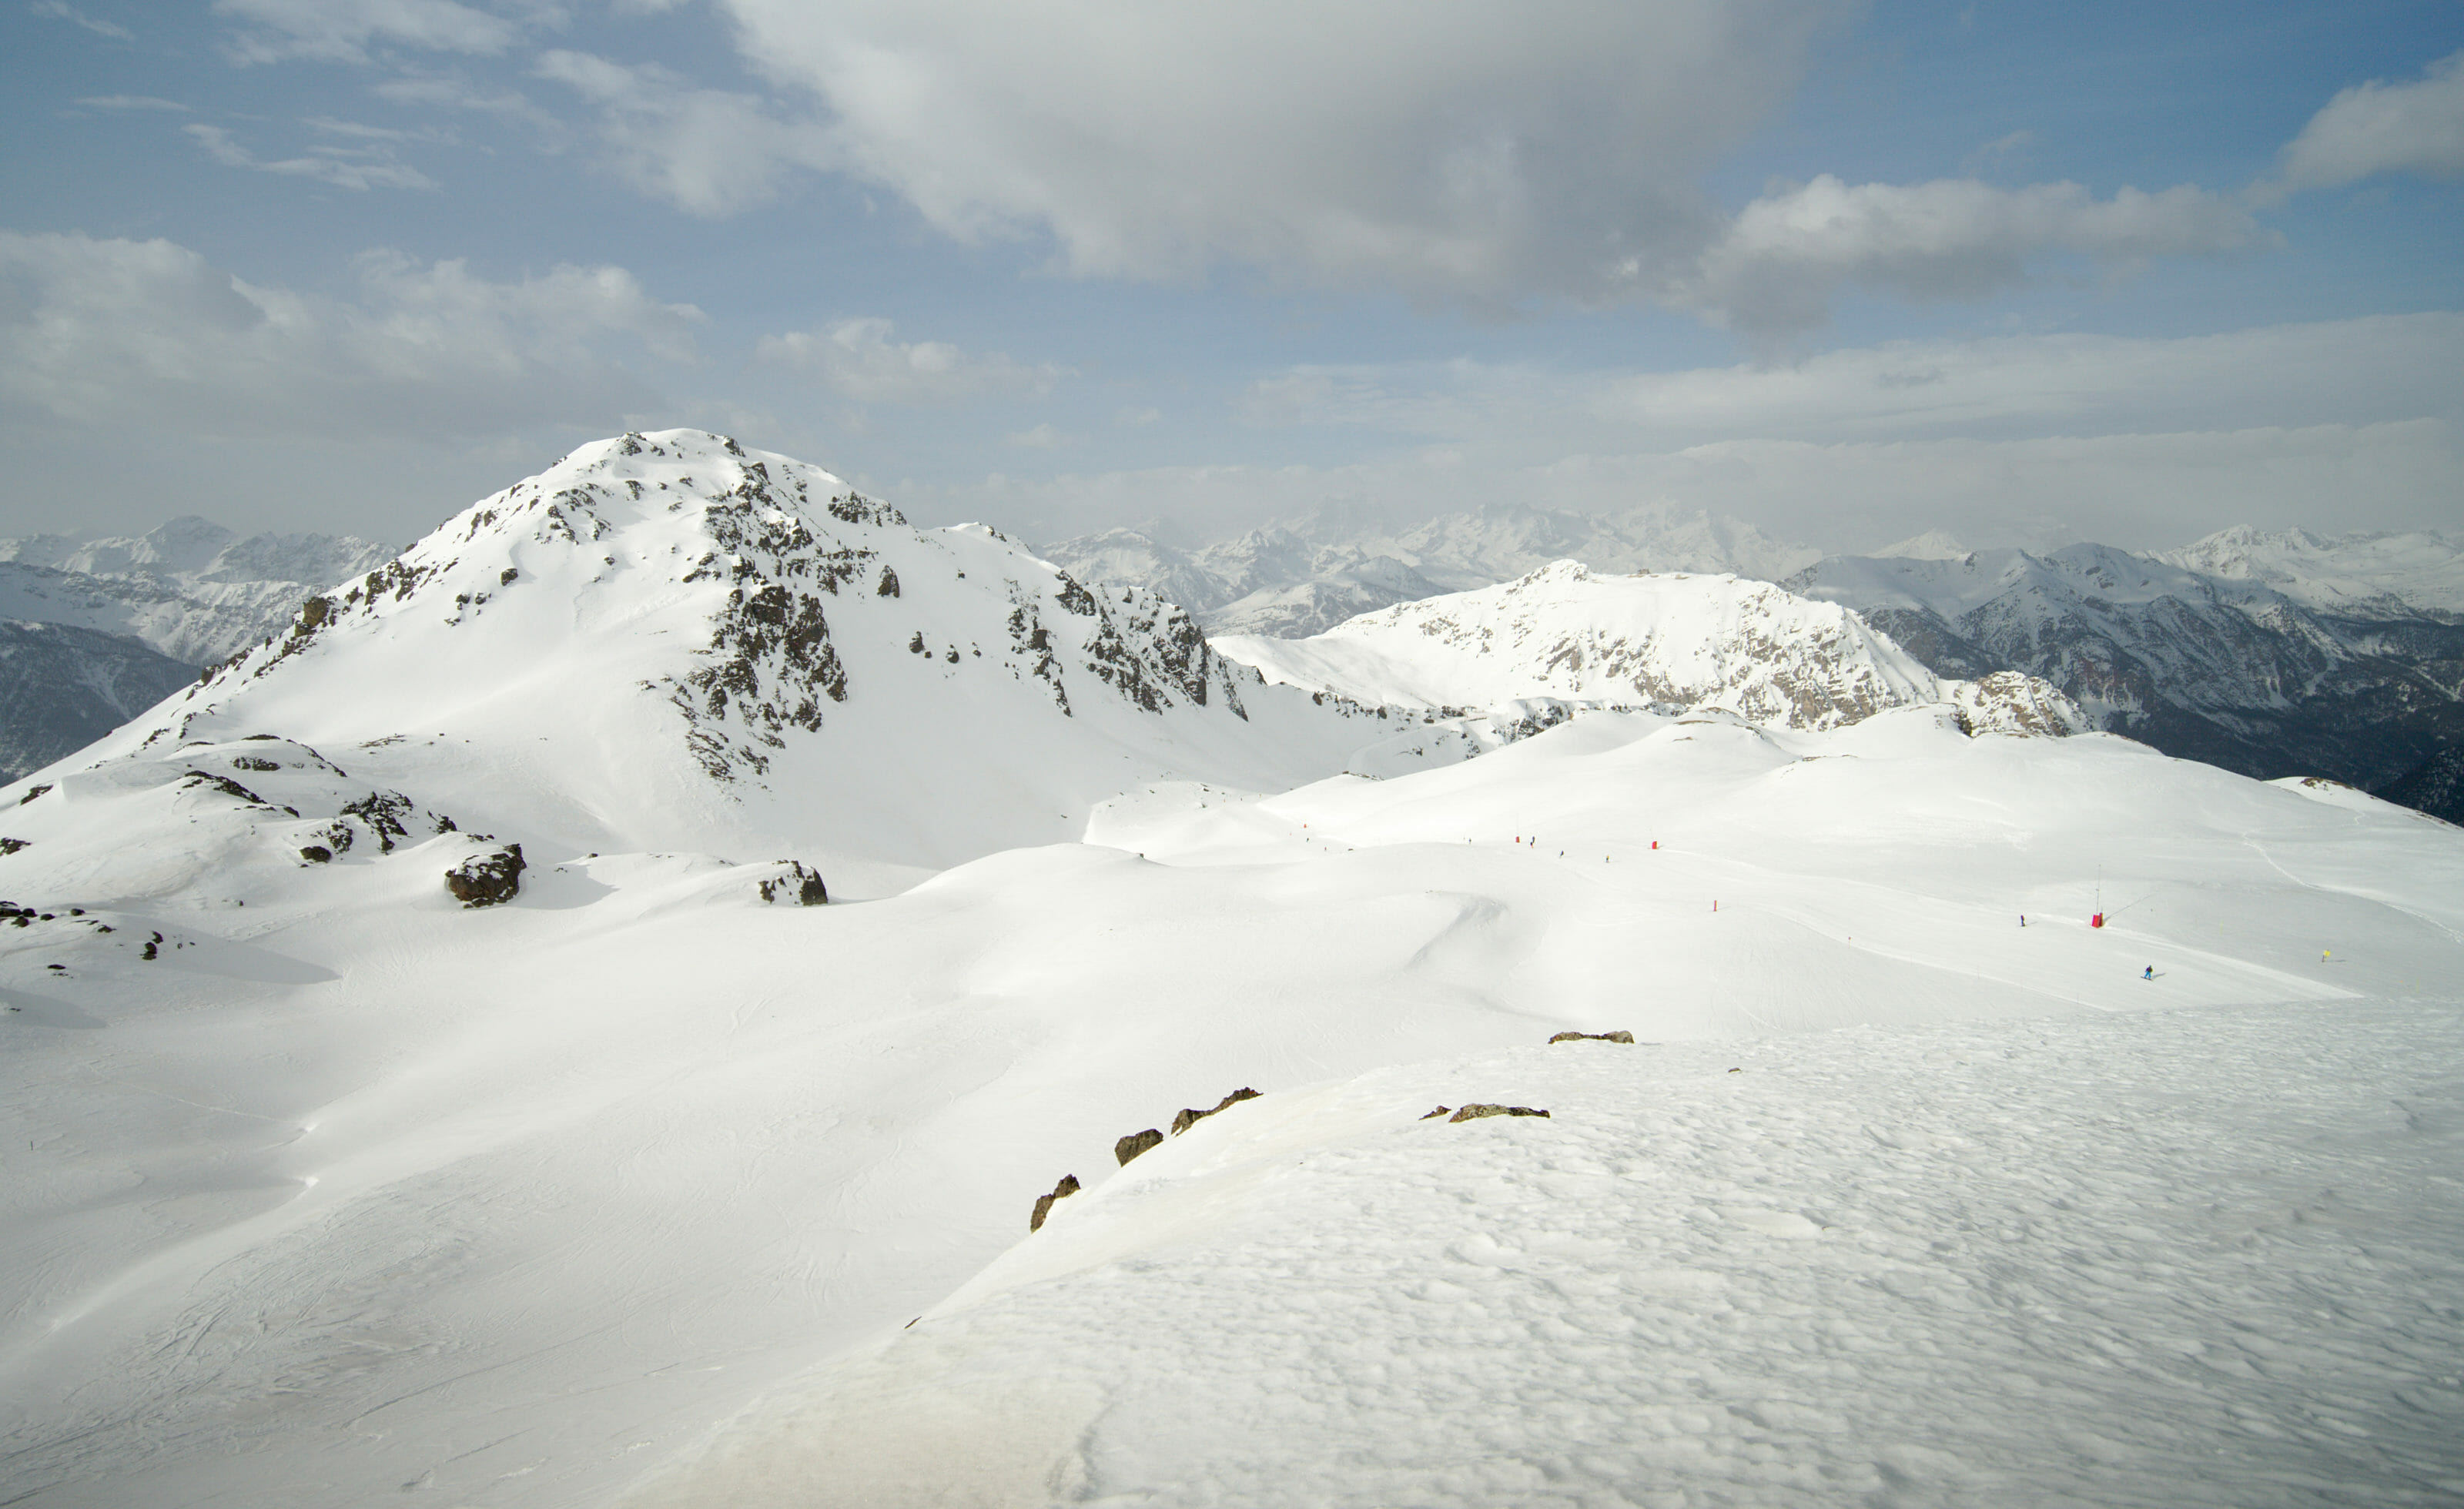 skiing in the french alps